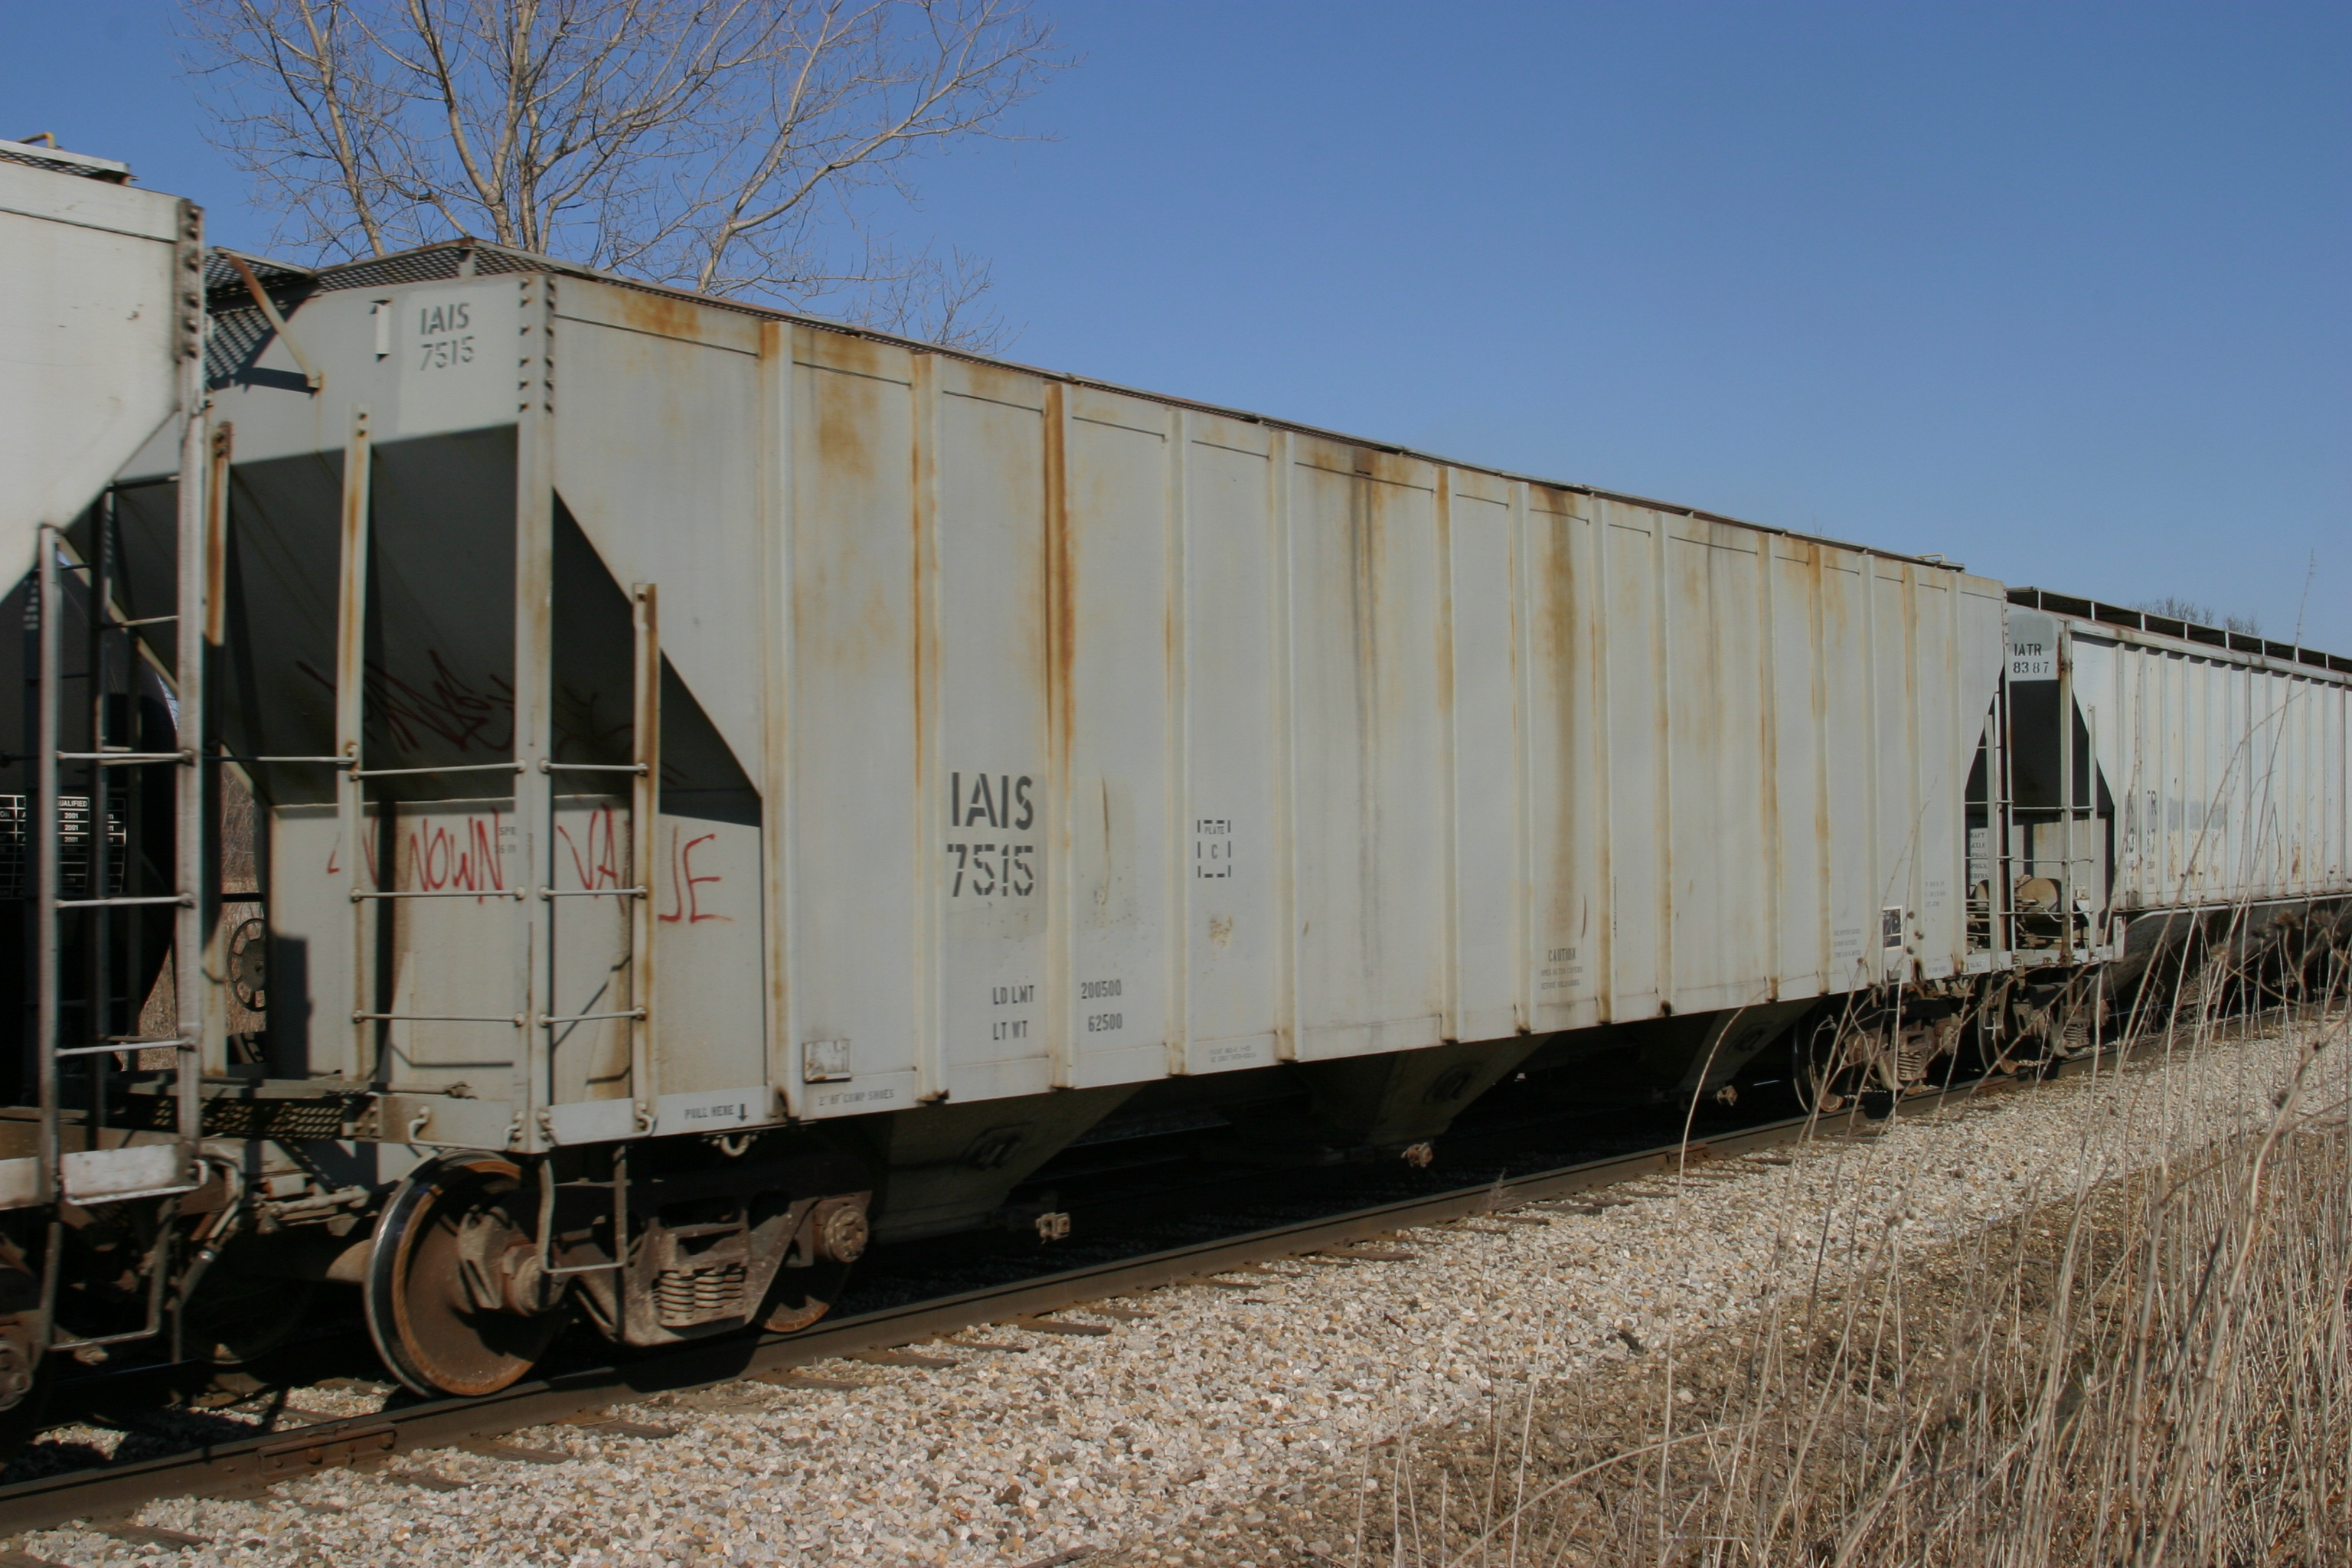 IAIS 7515 at Homestead, IA, on 16-Mar-2005